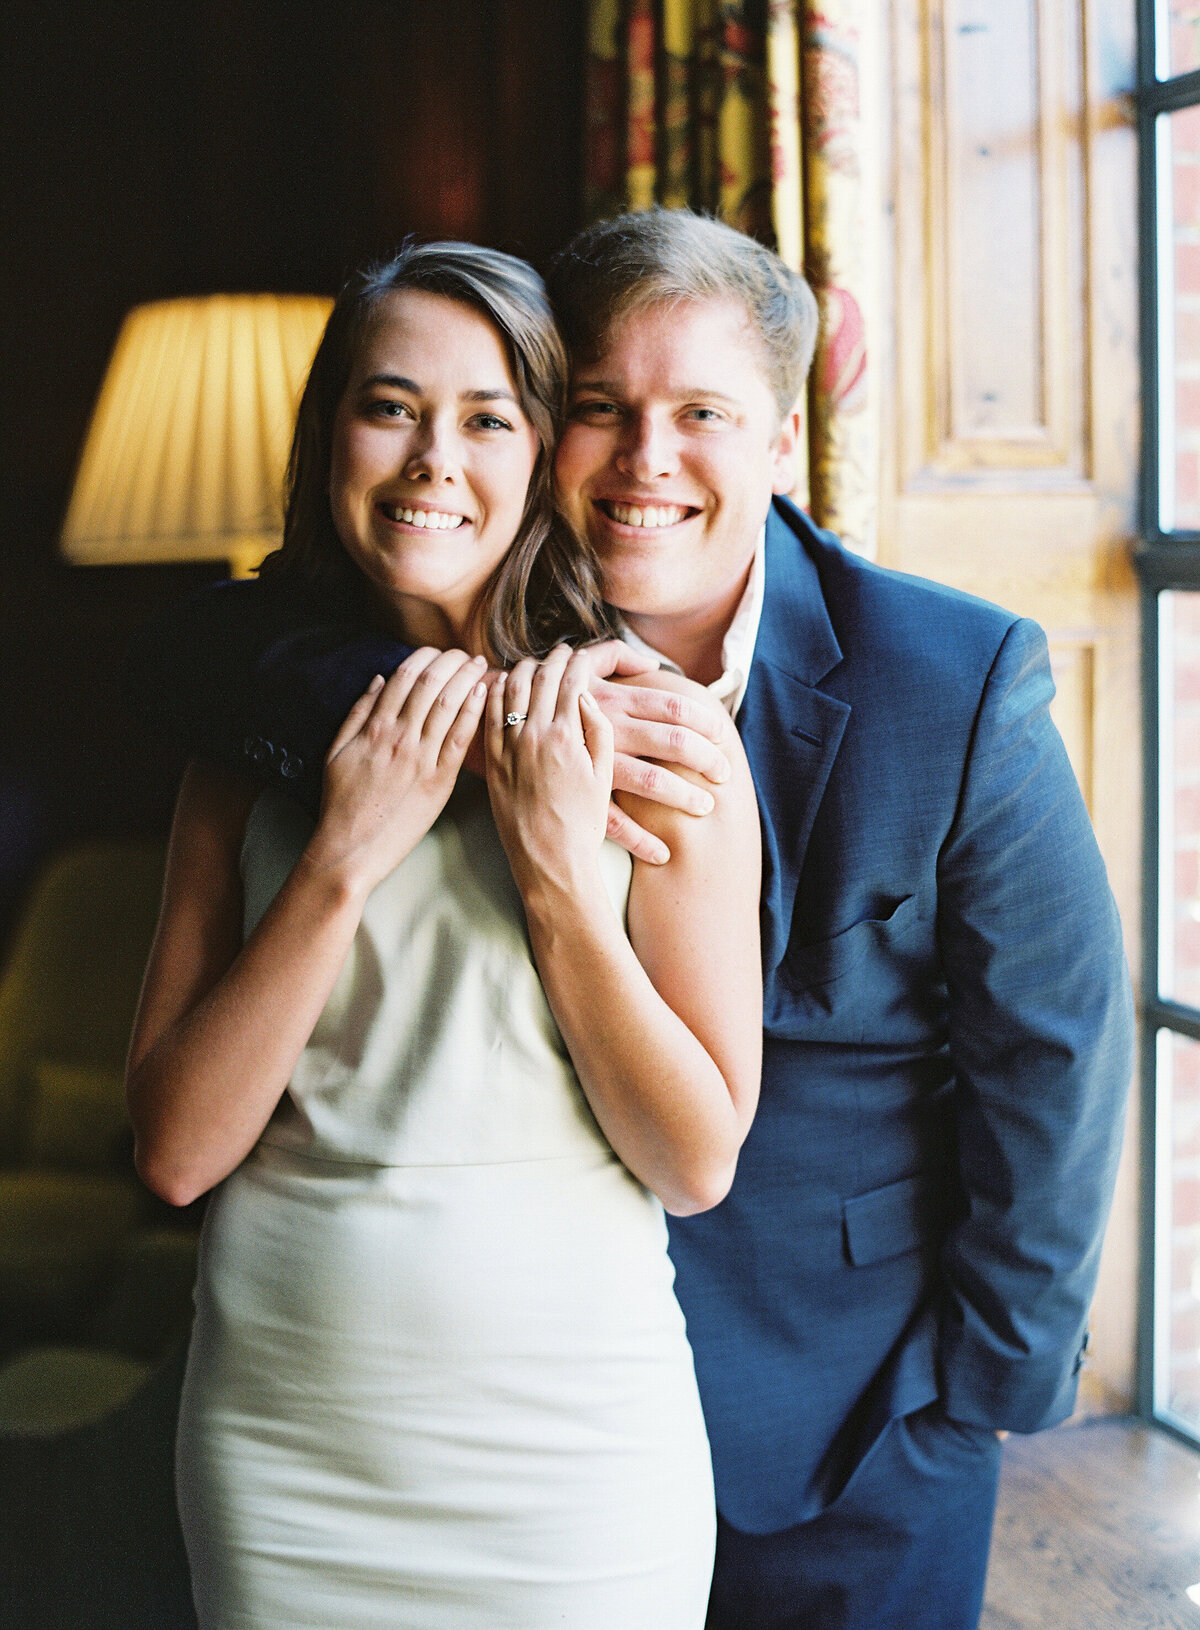 Old-Edwards-Inn-Wedding-Engagement-Photographer-Highlands-Cashiers-North-Carolina-8